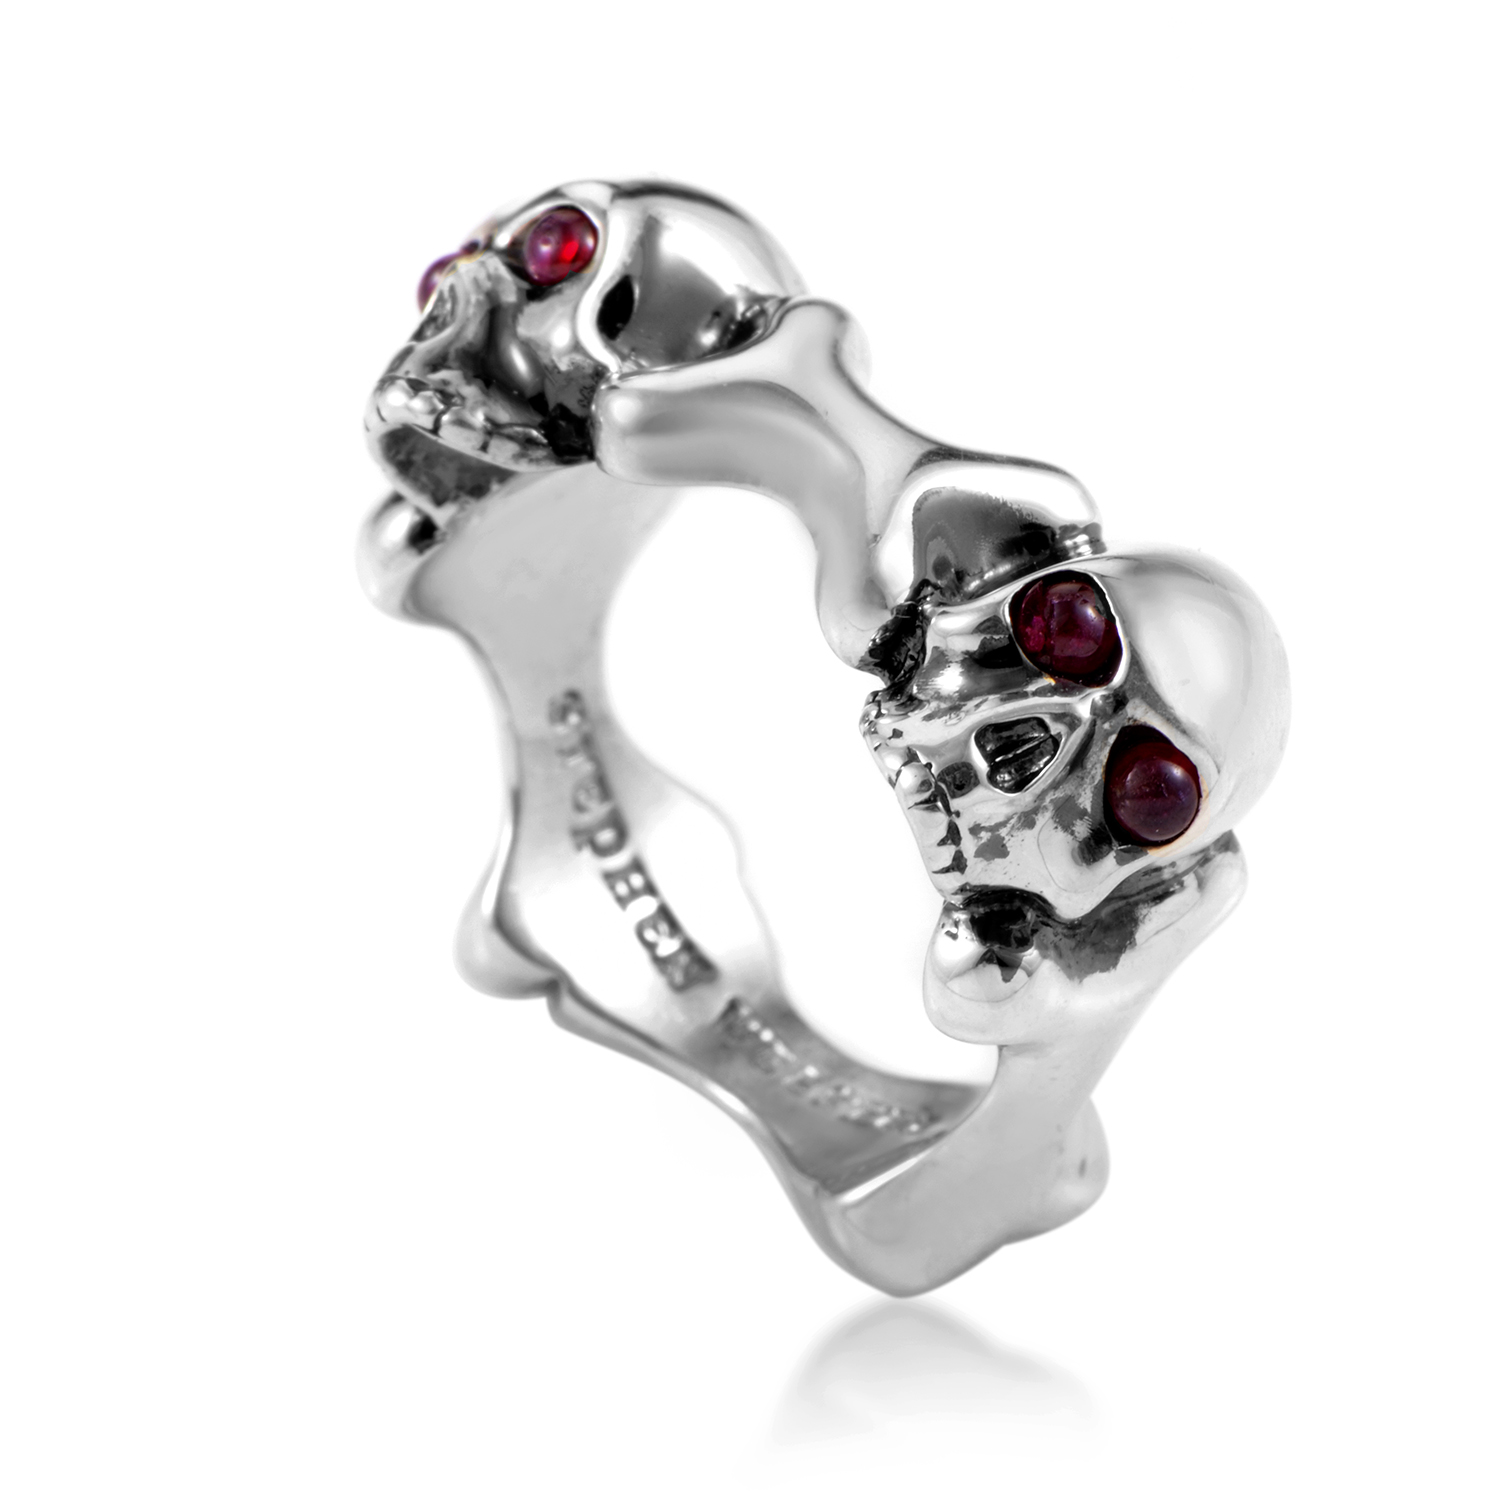 Mens Skull and Bones Sterling Silver & Ruby Ring 3005309